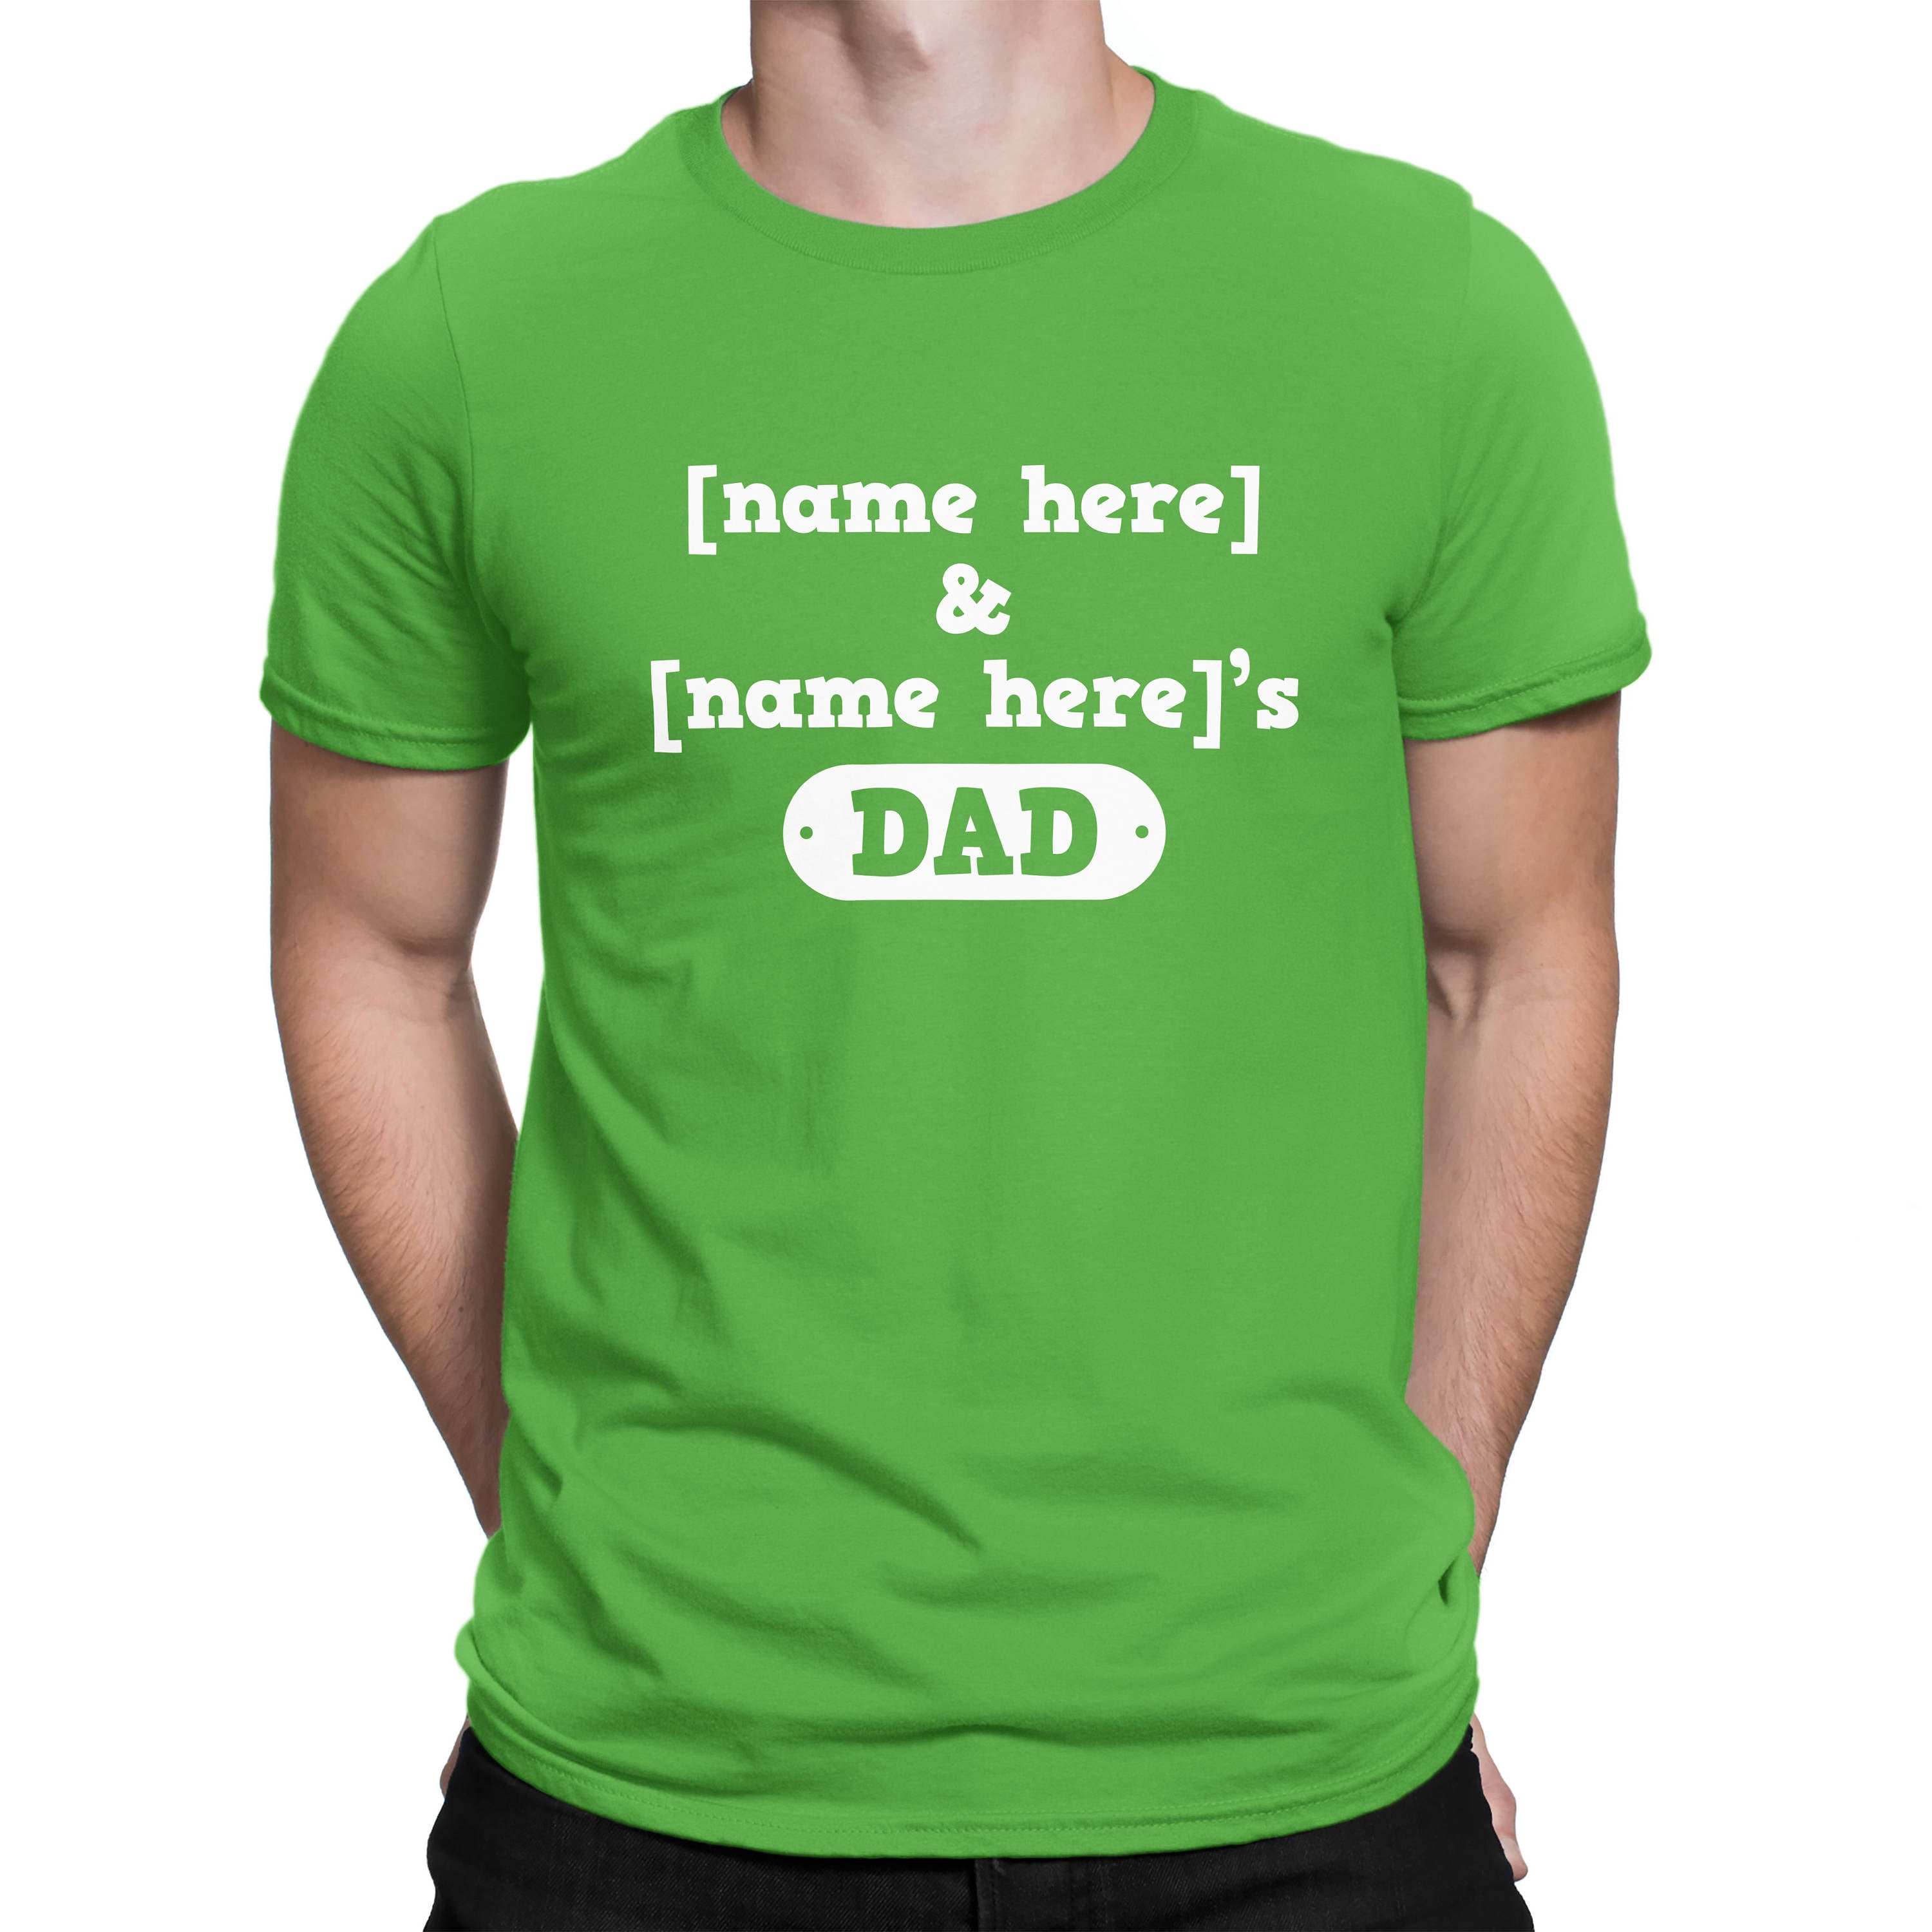 43a0471f Custom Father's Day Shirt with Kids Names - Shirt for Dad from Kids Dad -  Gift for Daddy with Kids names - Father's Day Surprise from Kids